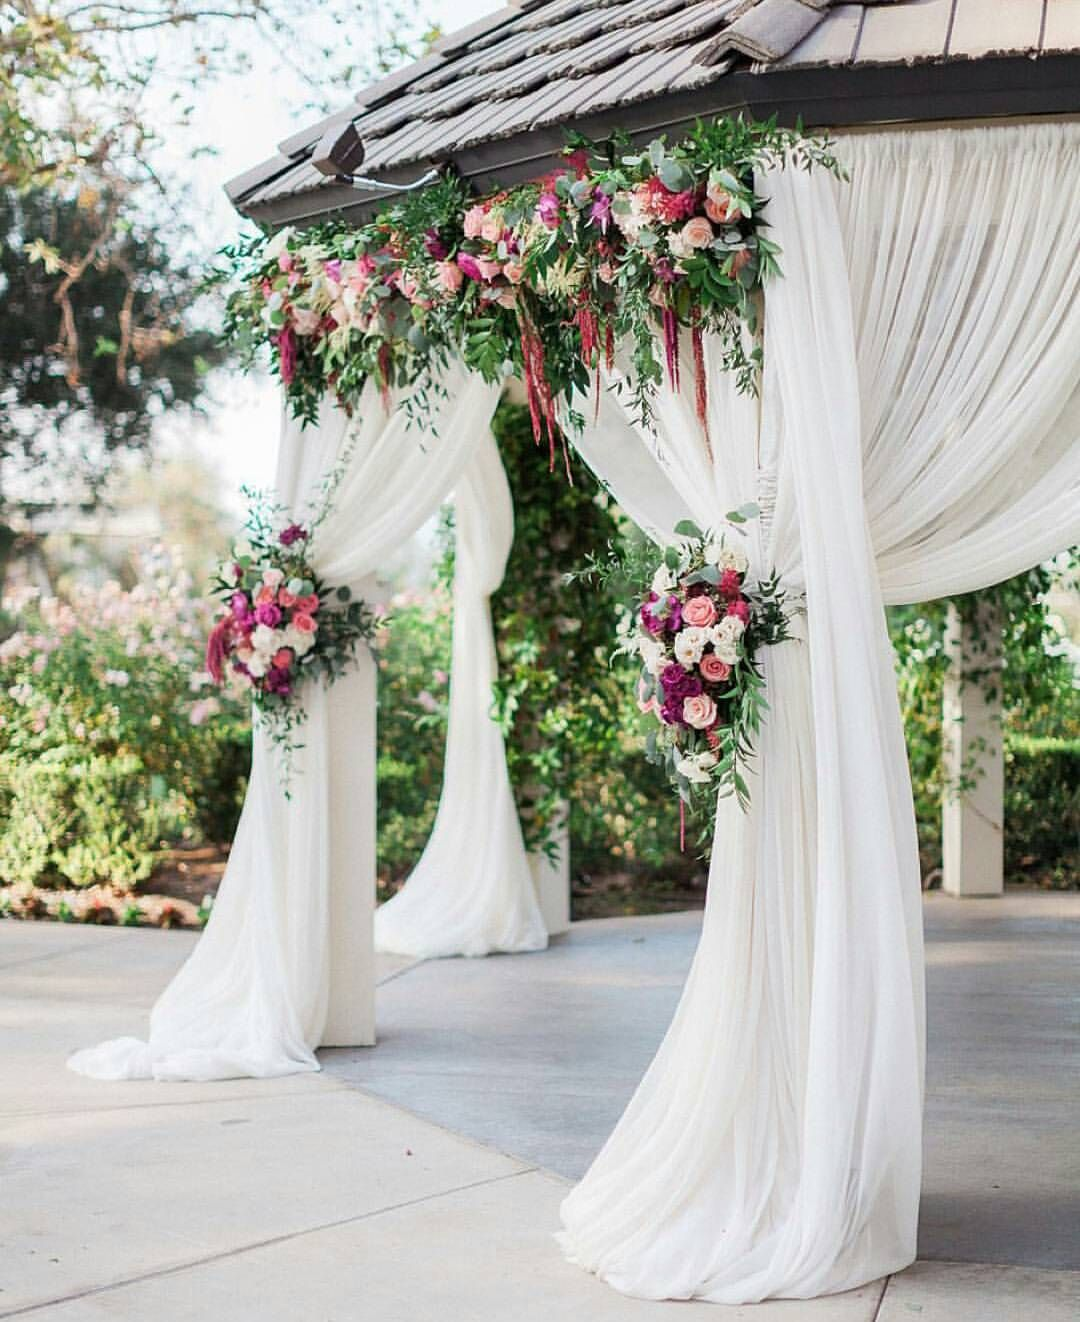 Love Wedding Decorations Love The Range Of Colors Here But Would Like To See More Vibrancy